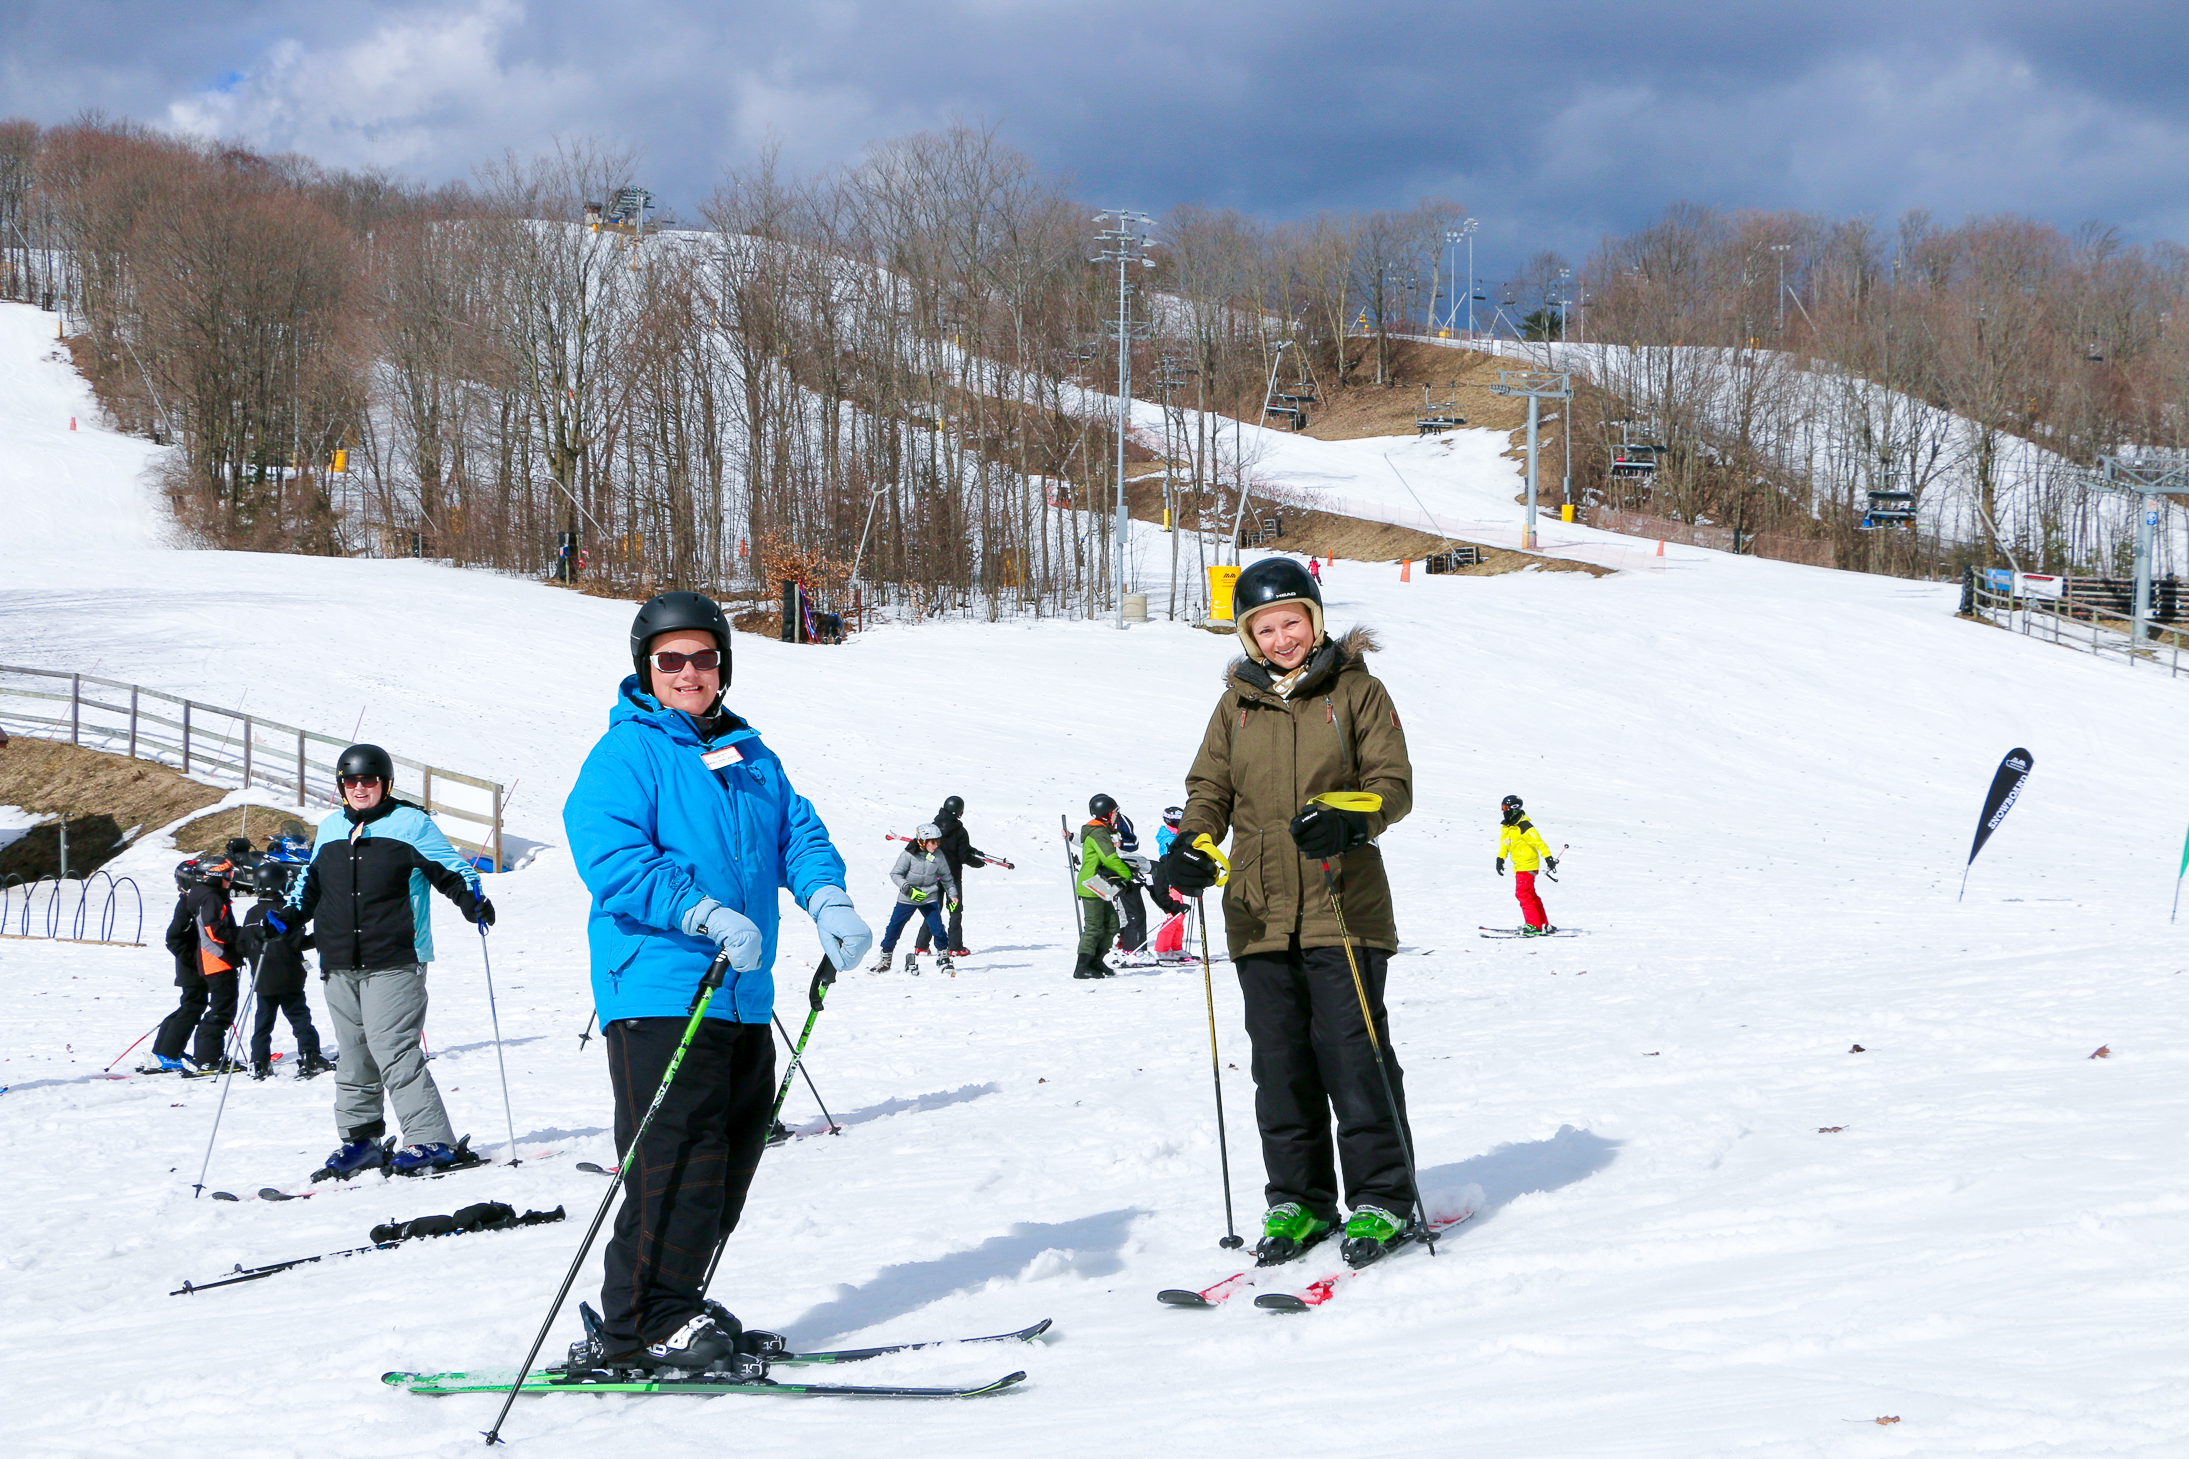 Winter Travel Bucket List: What to Do - Mount St. Louis Moonstone Skiing // thislilpiglet.net